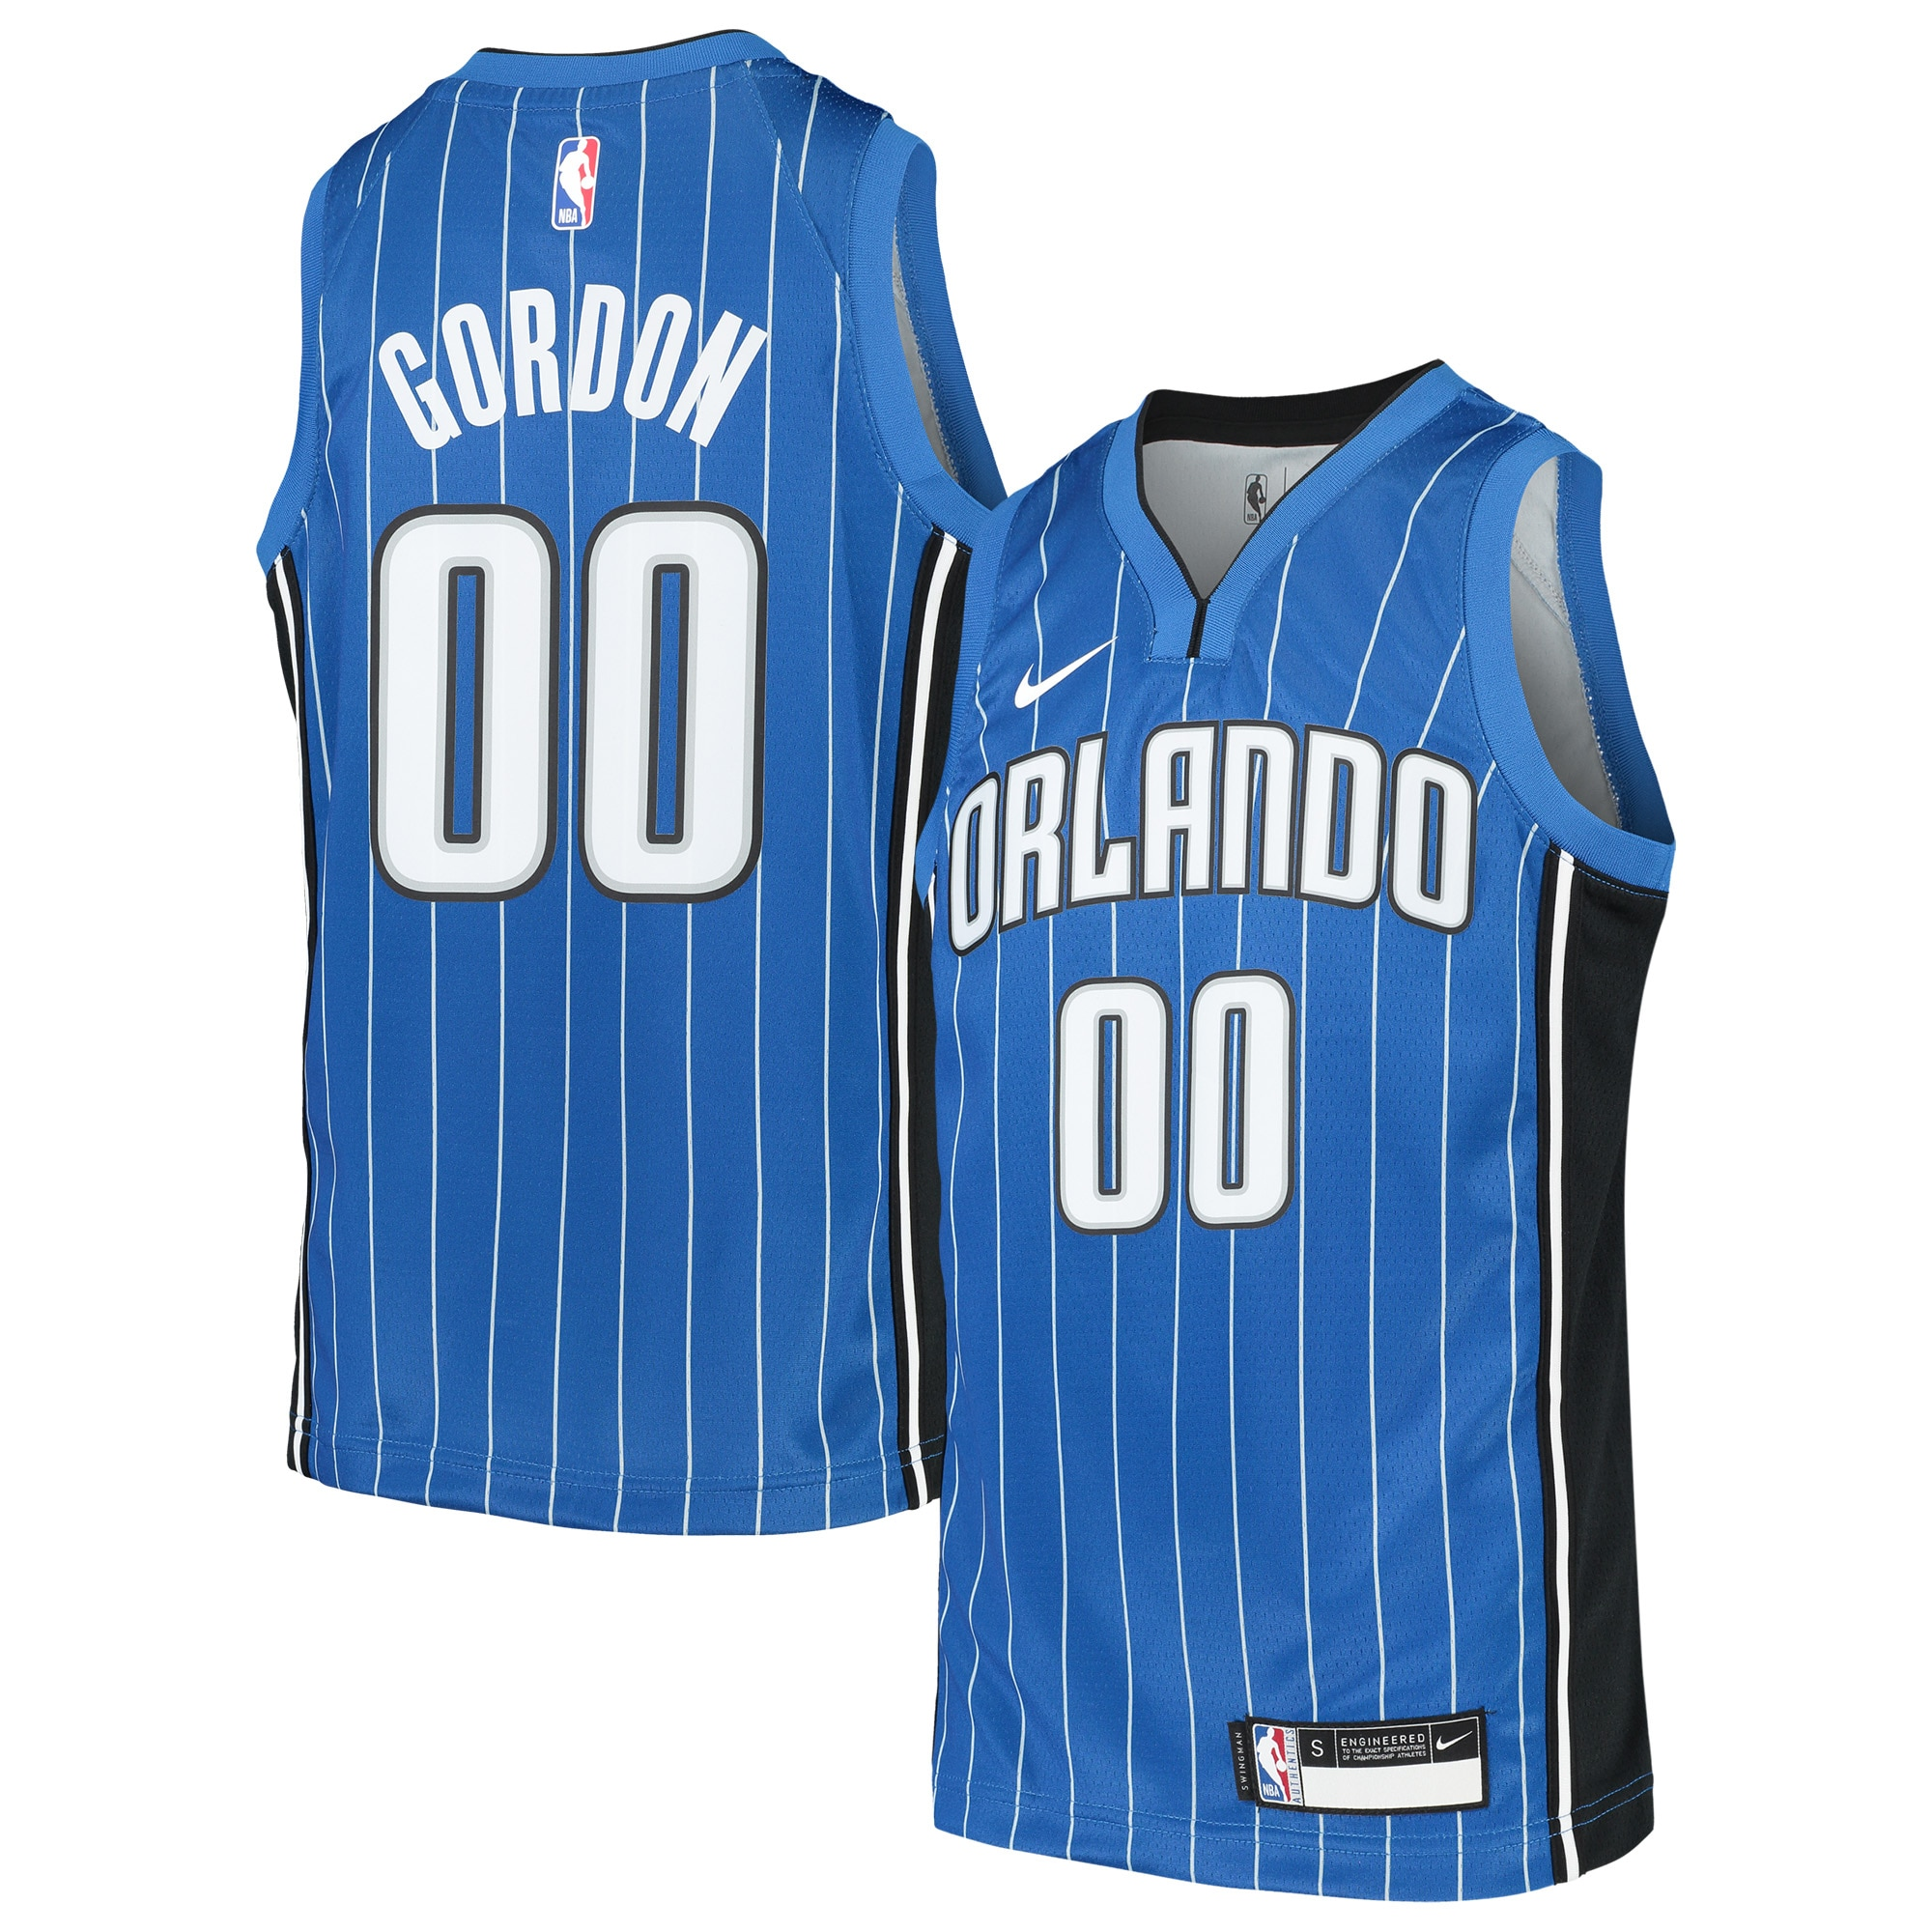 Aaron Gordon Orlando Magic Nike Youth Swingman Jersey - Blue